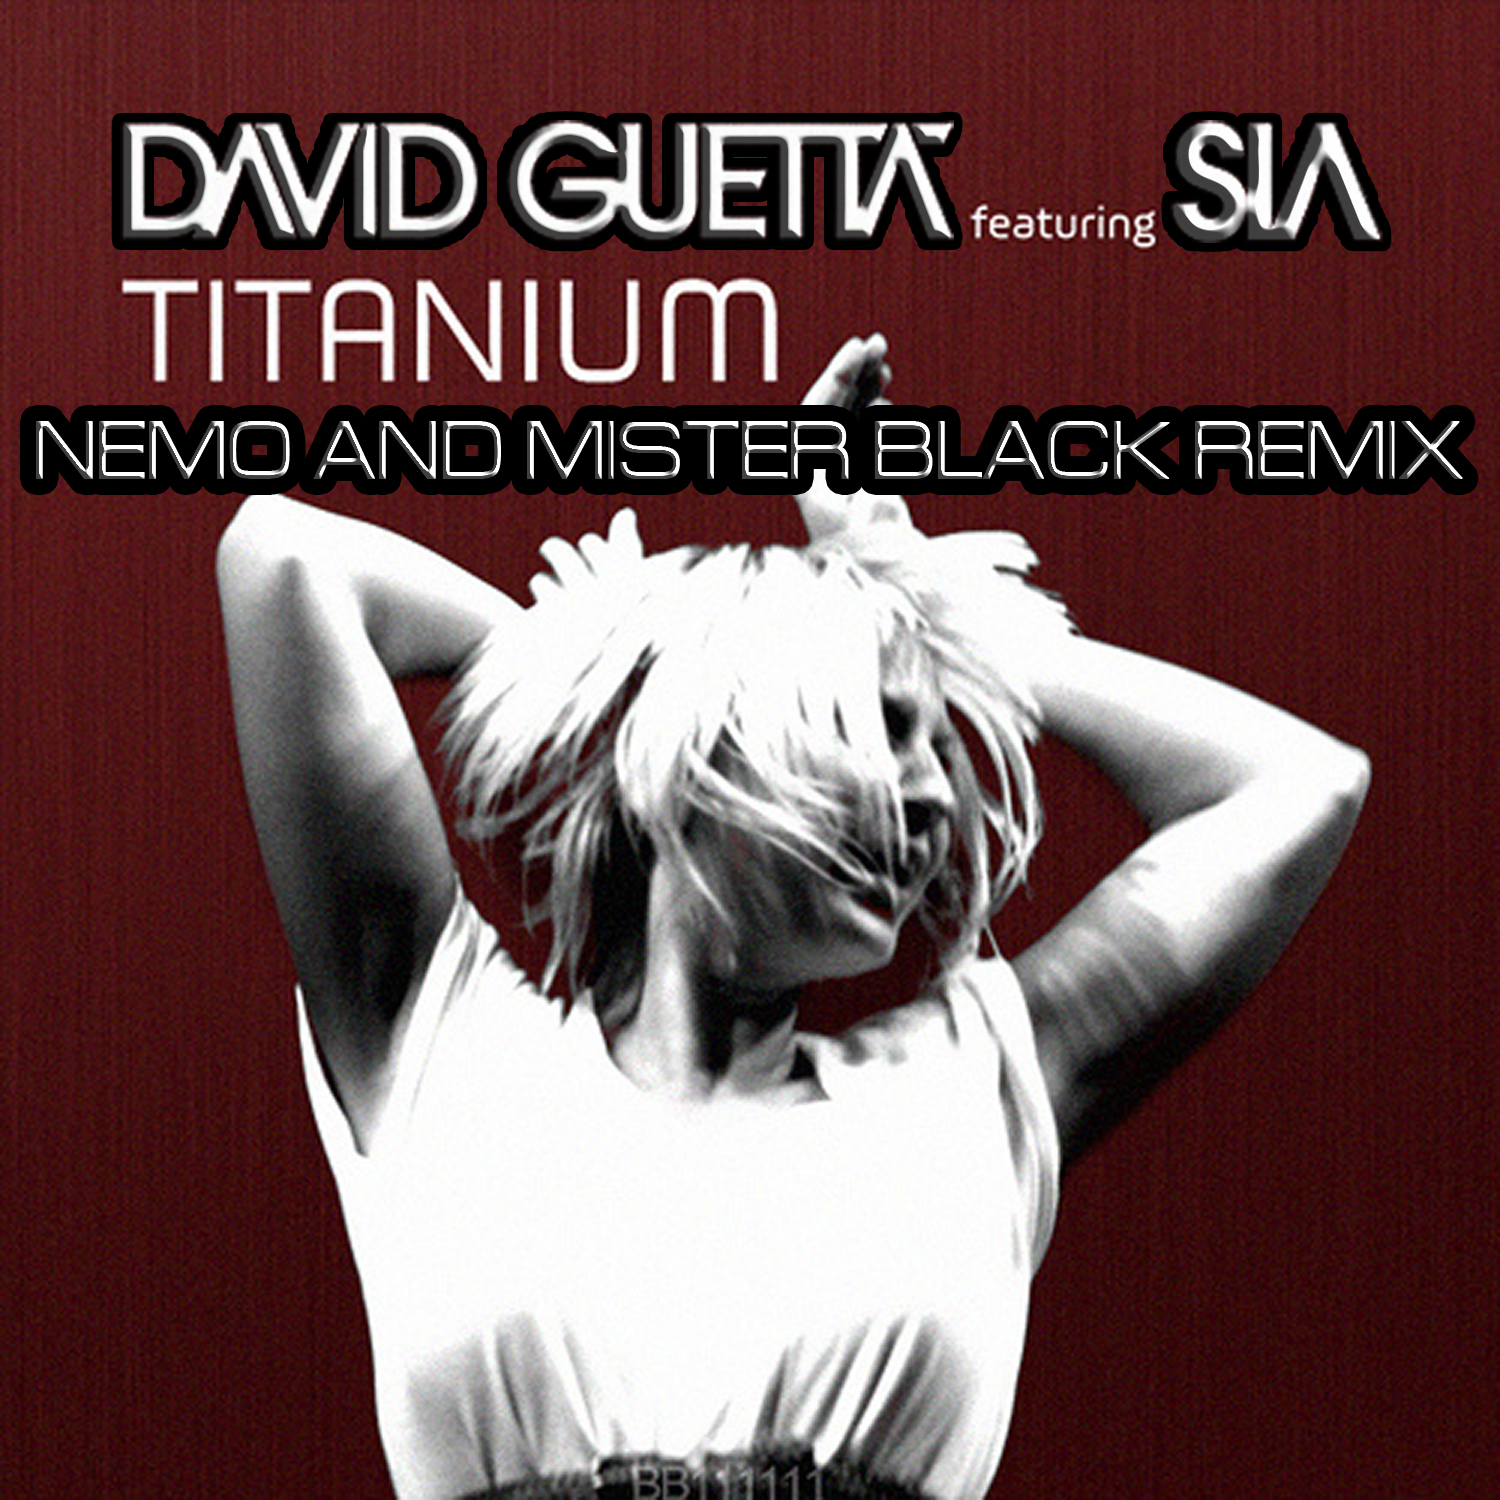 DUBSTEP | David Guetta Feat. Sia - Titanium (Nemo and Mister Black Remix)